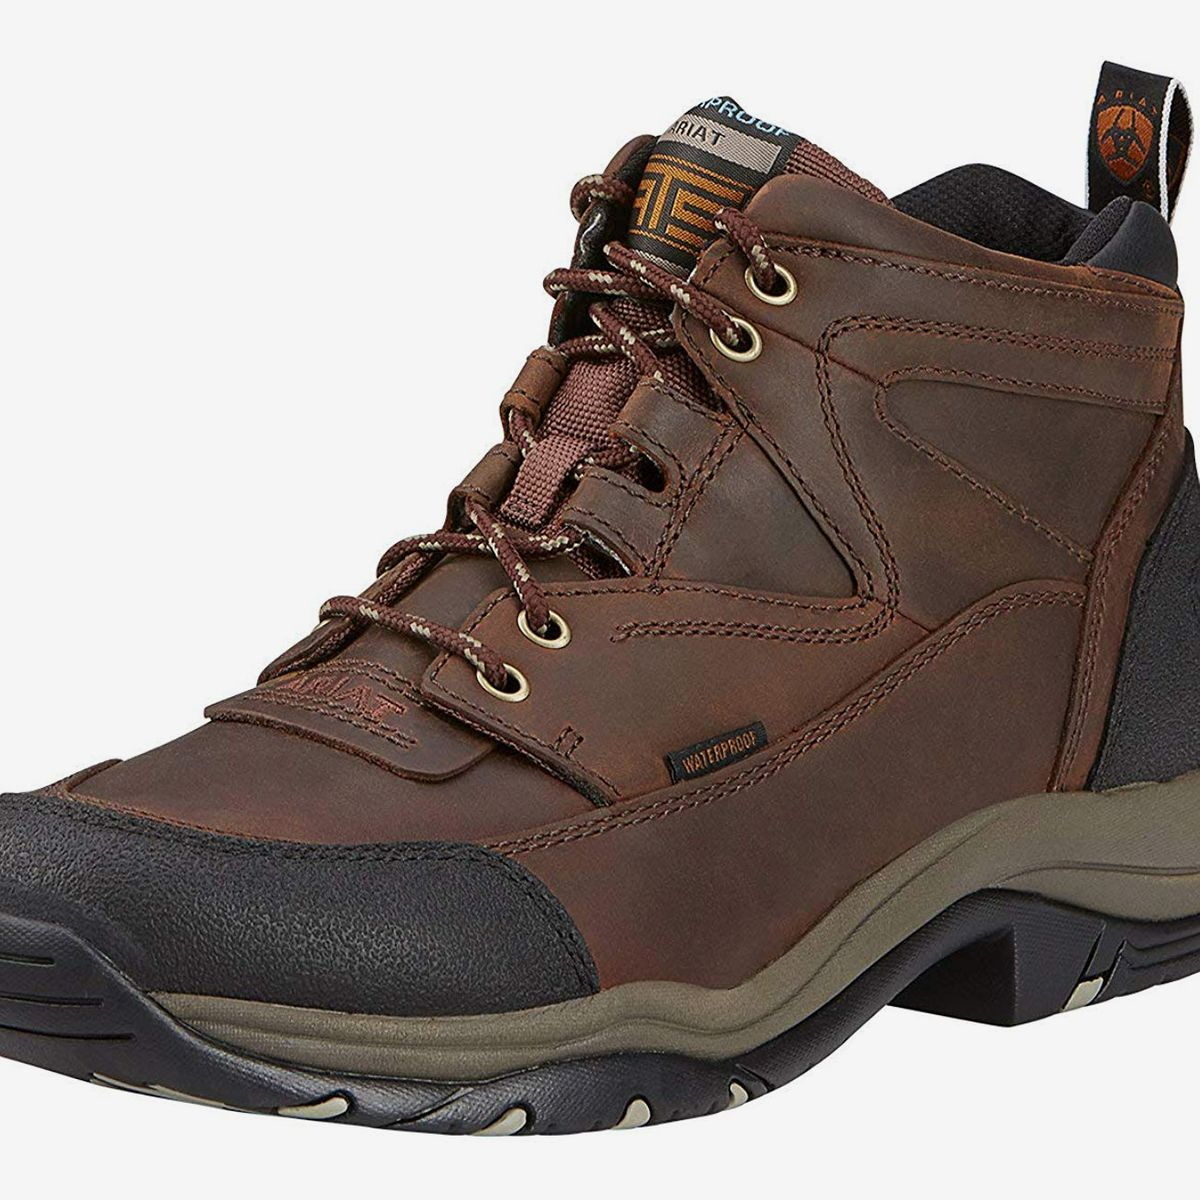 Blowind Waterproof Work Boots for Men Hiking Shoes Men Work Shoes for Men Work Boots Mens Waterproof Hiking Boots Mens Work Boots for Men